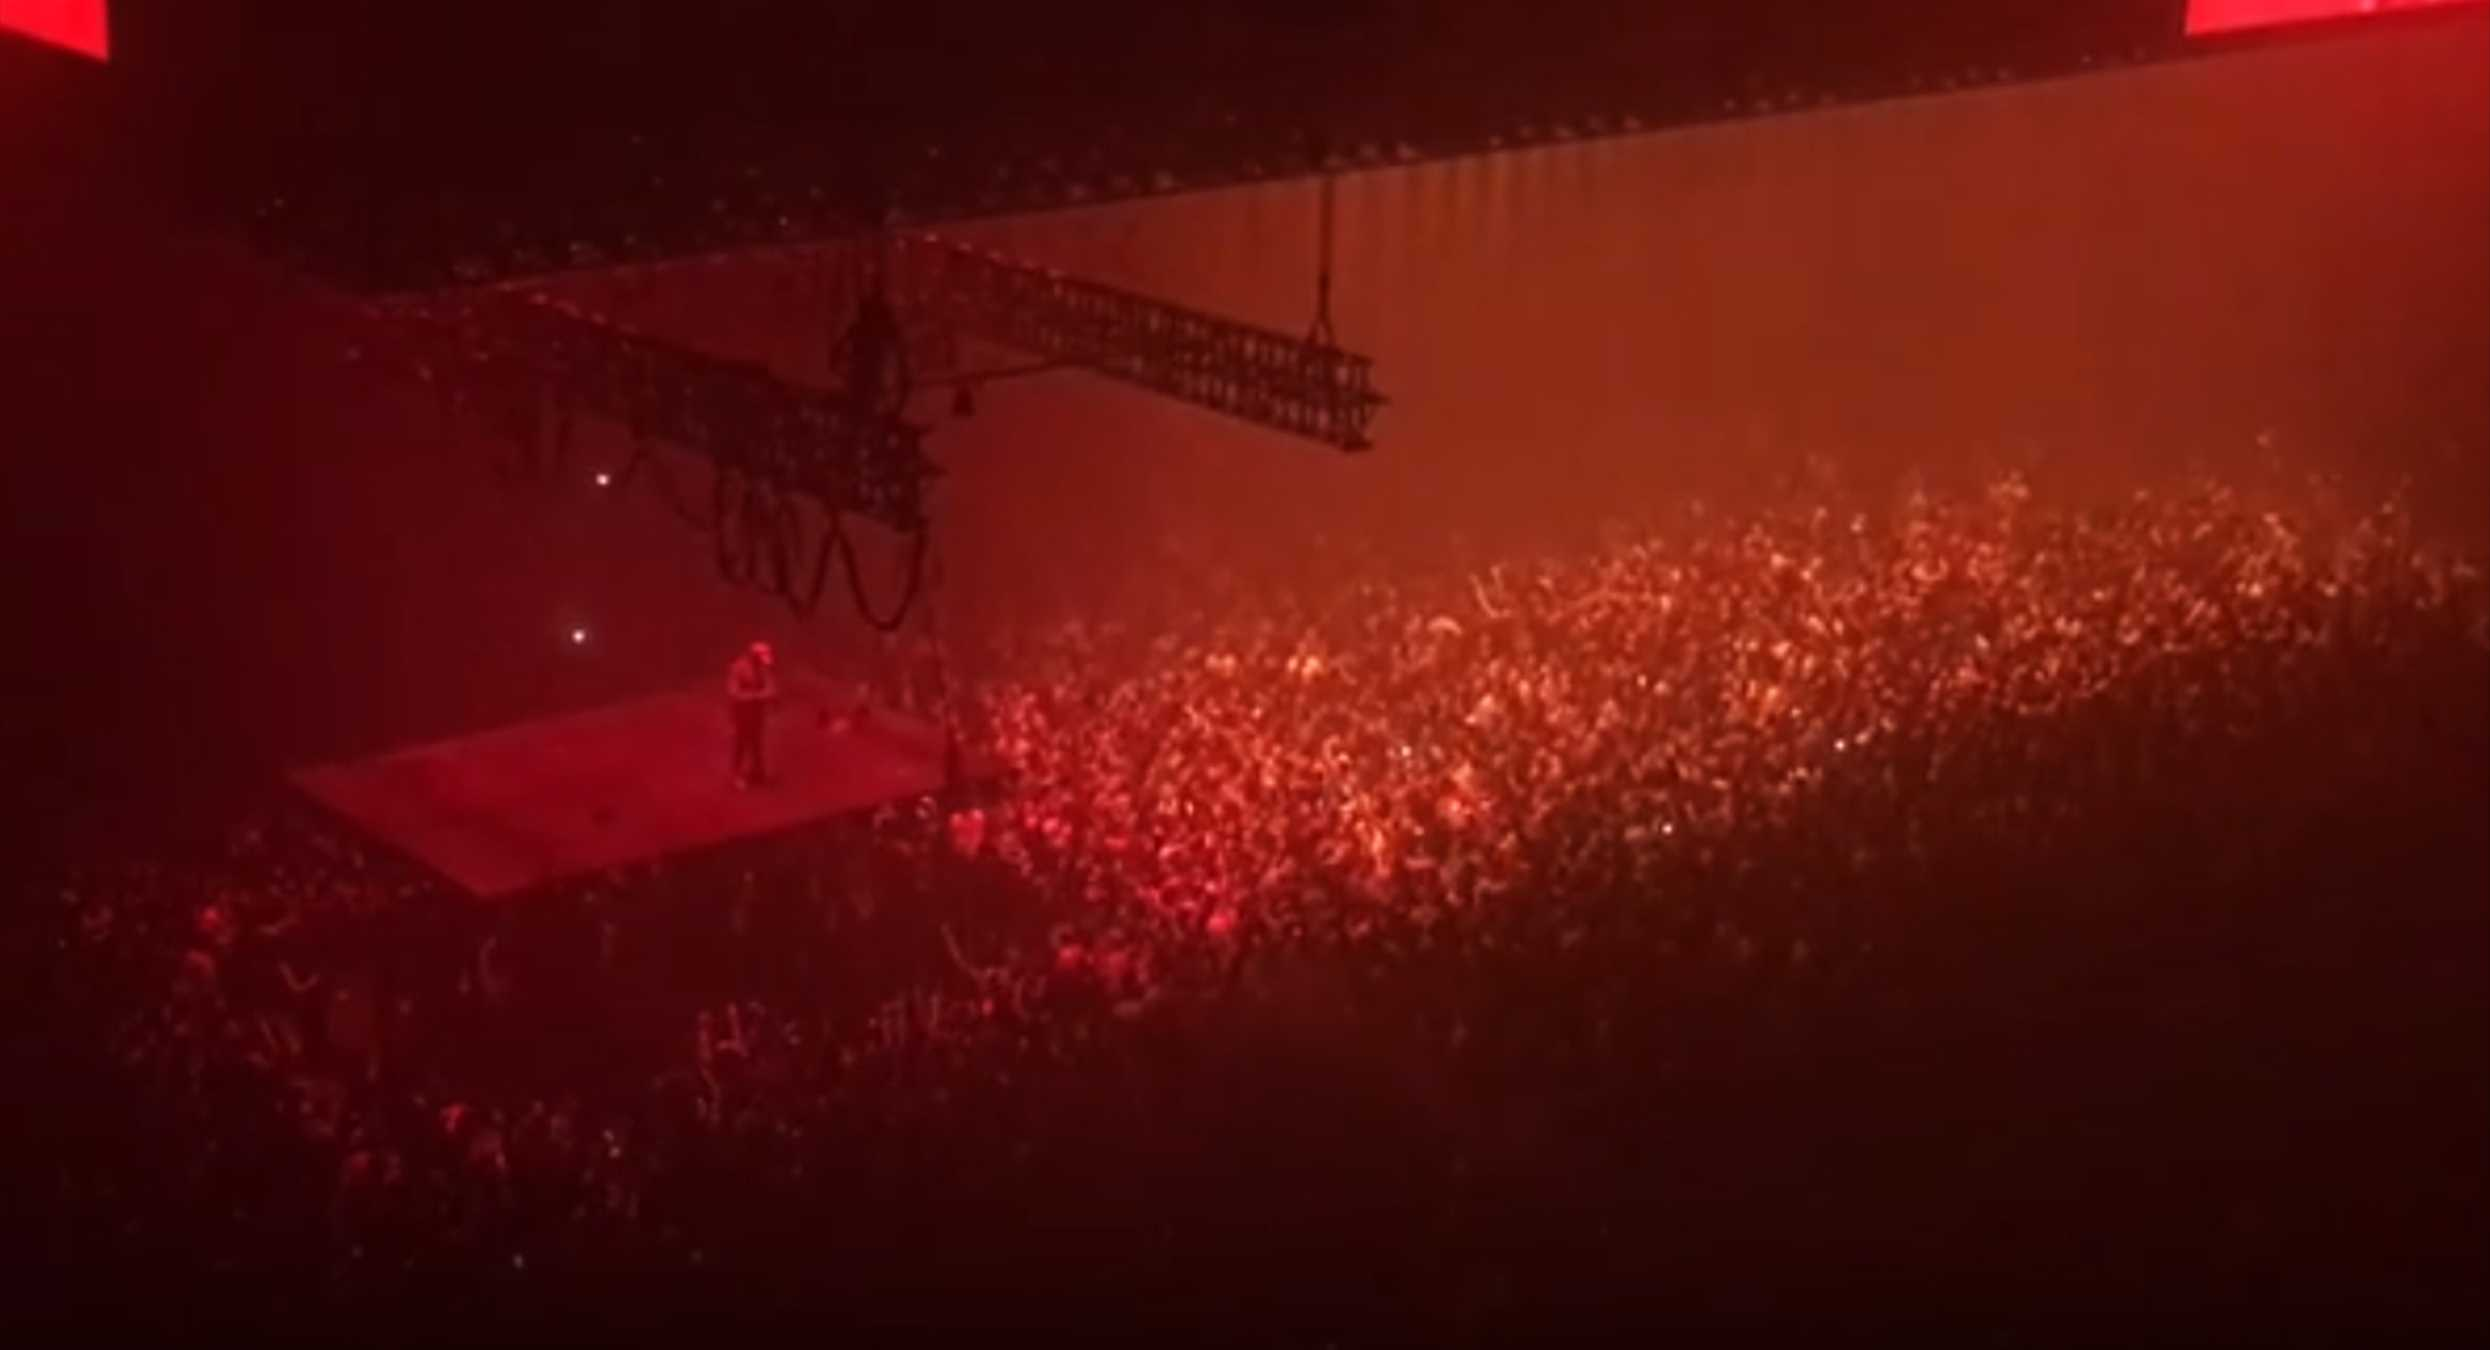 'I Would Have Voted for Trump,' Kanye West Tells San Jose Concertgoers